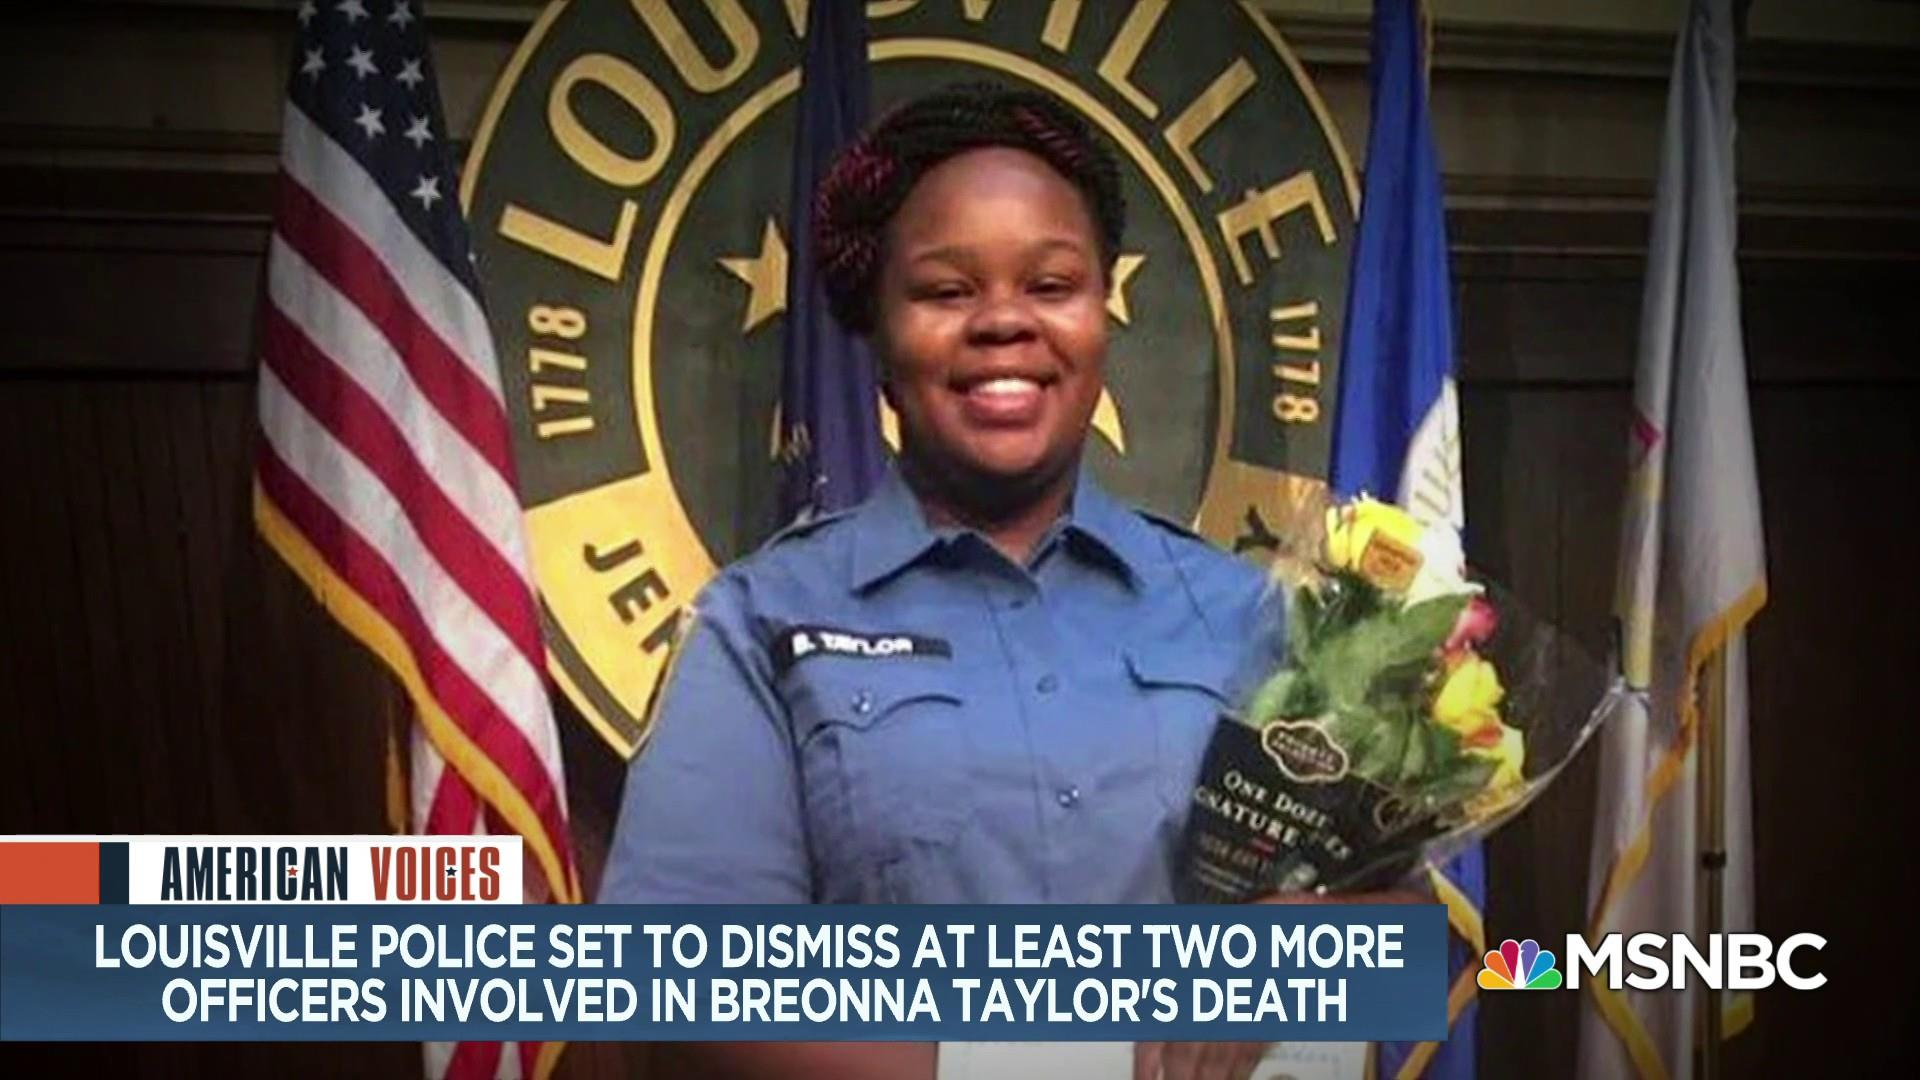 Louisville police to fire two officers fervent by Breonna Taylor's dying